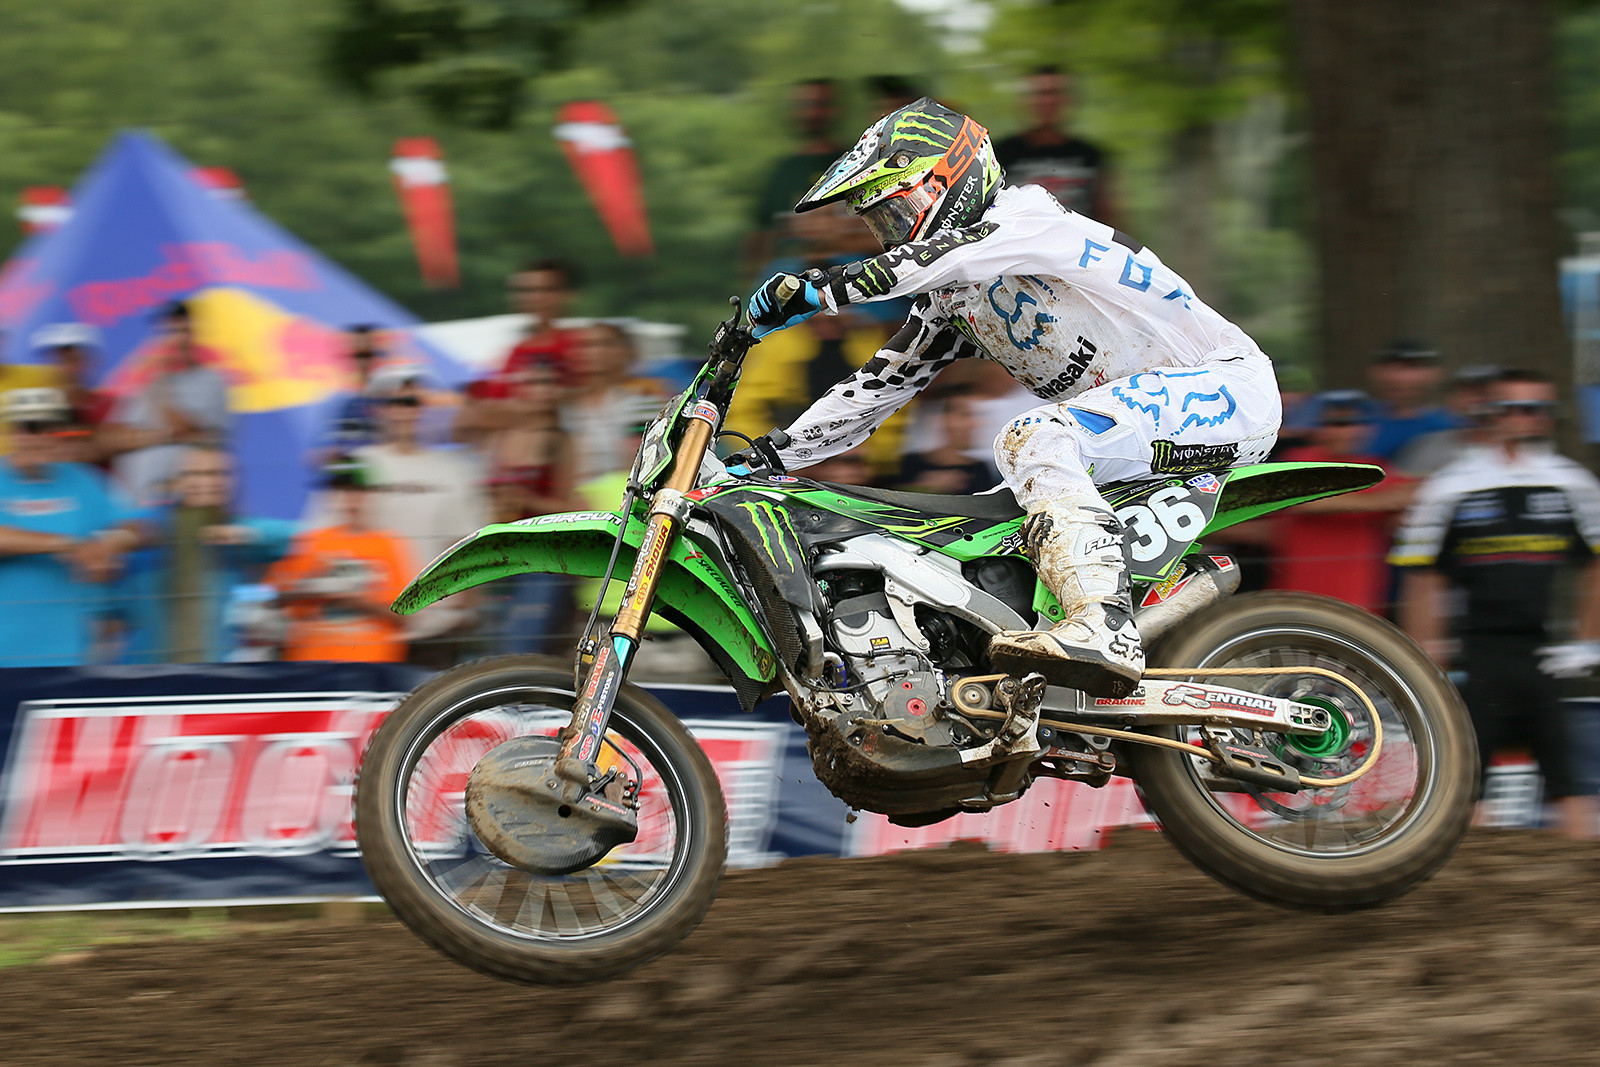 Adam Cianciarulo rolled in second in the first frame of the 250s, but he slipped to fifth in moto two, and was fourth overall.